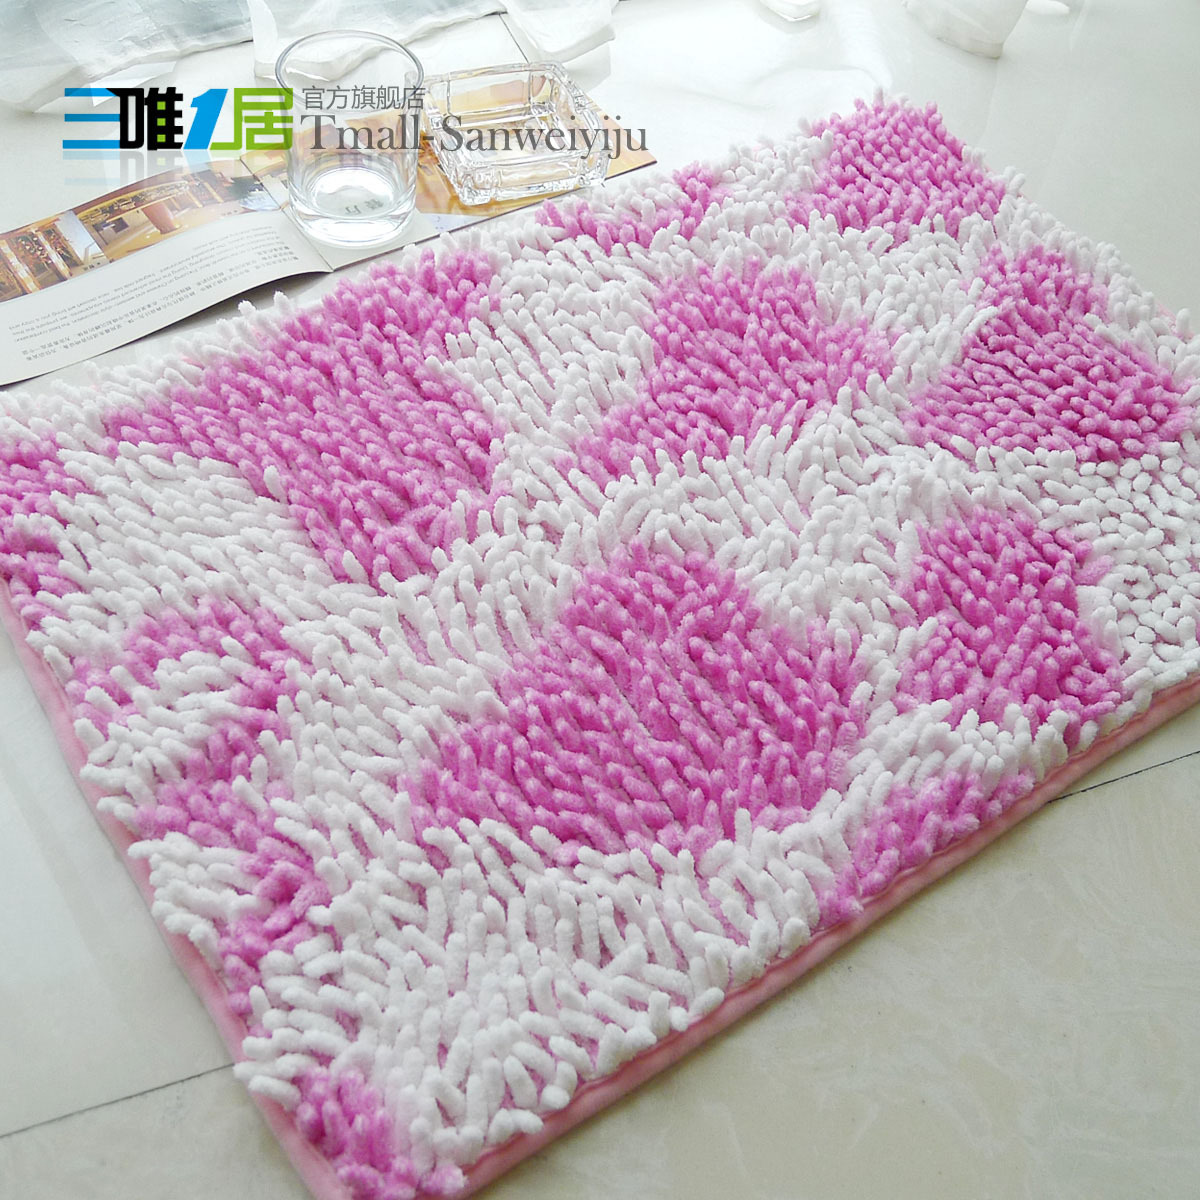 bath rug online shopping the world largest chenille shaggy bath rug